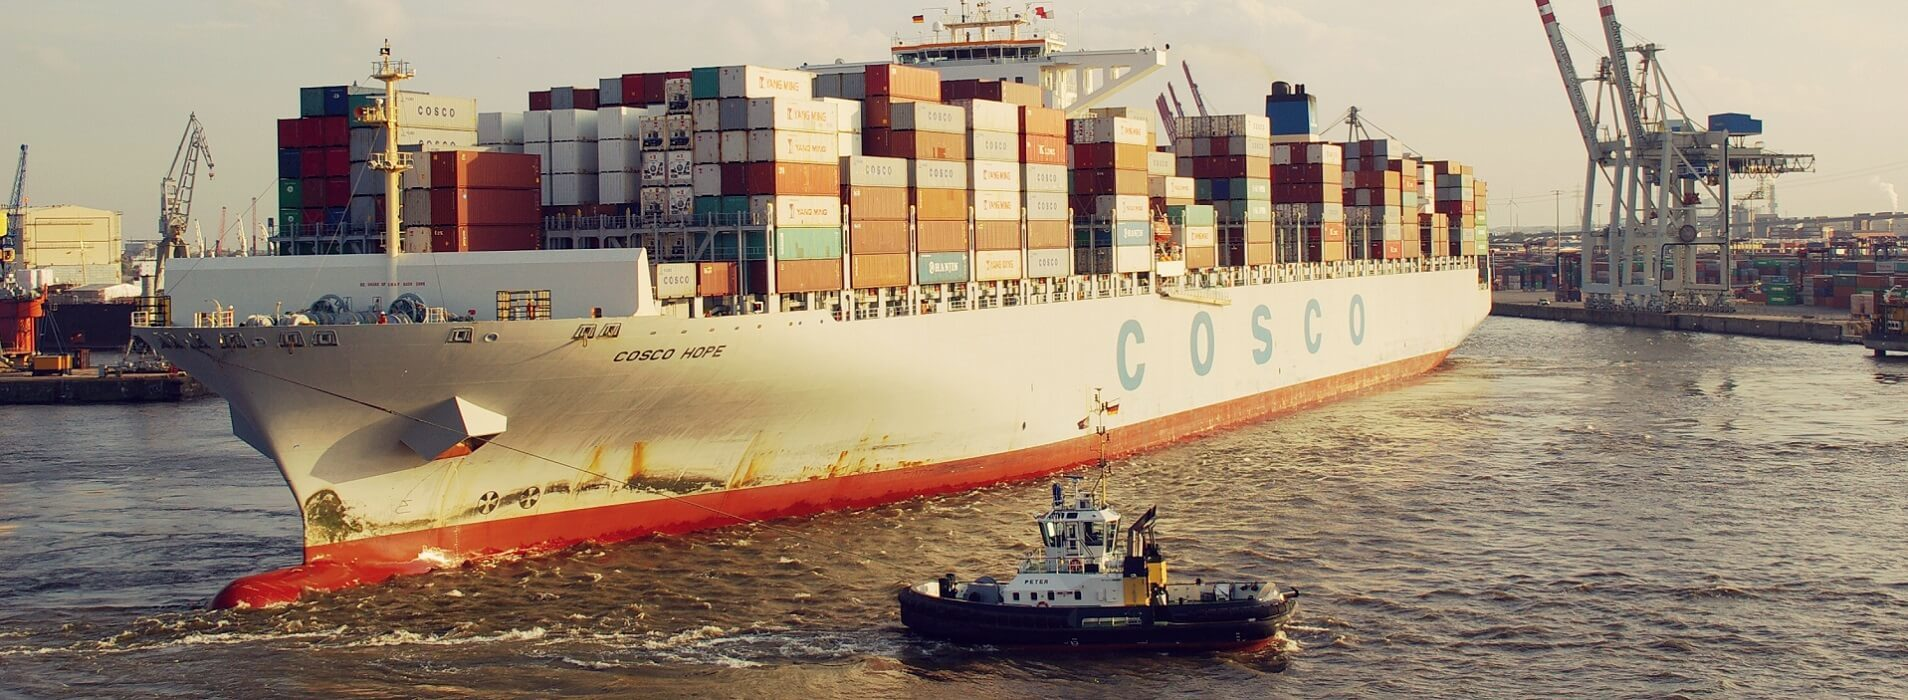 COSCO Container Vessels